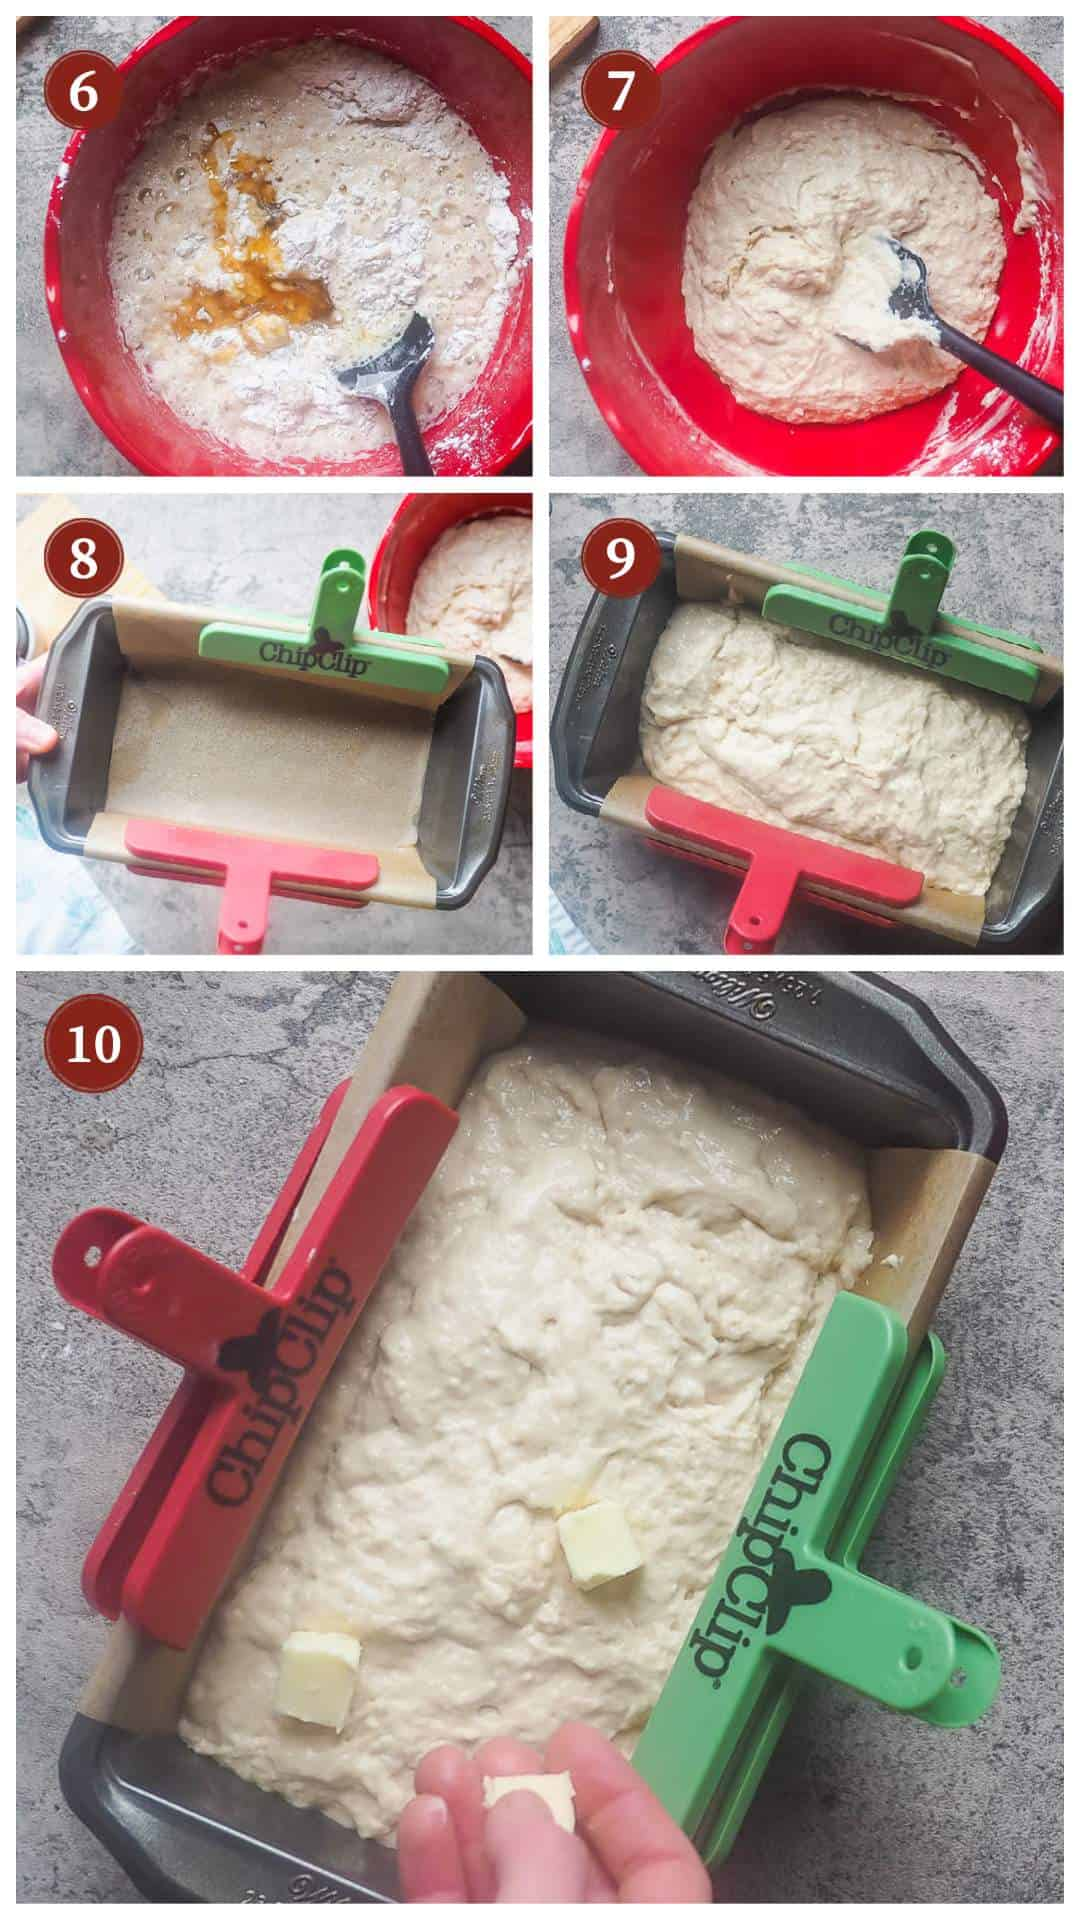 A collage of images showing the process of making beer bread, steps 6 - 10.